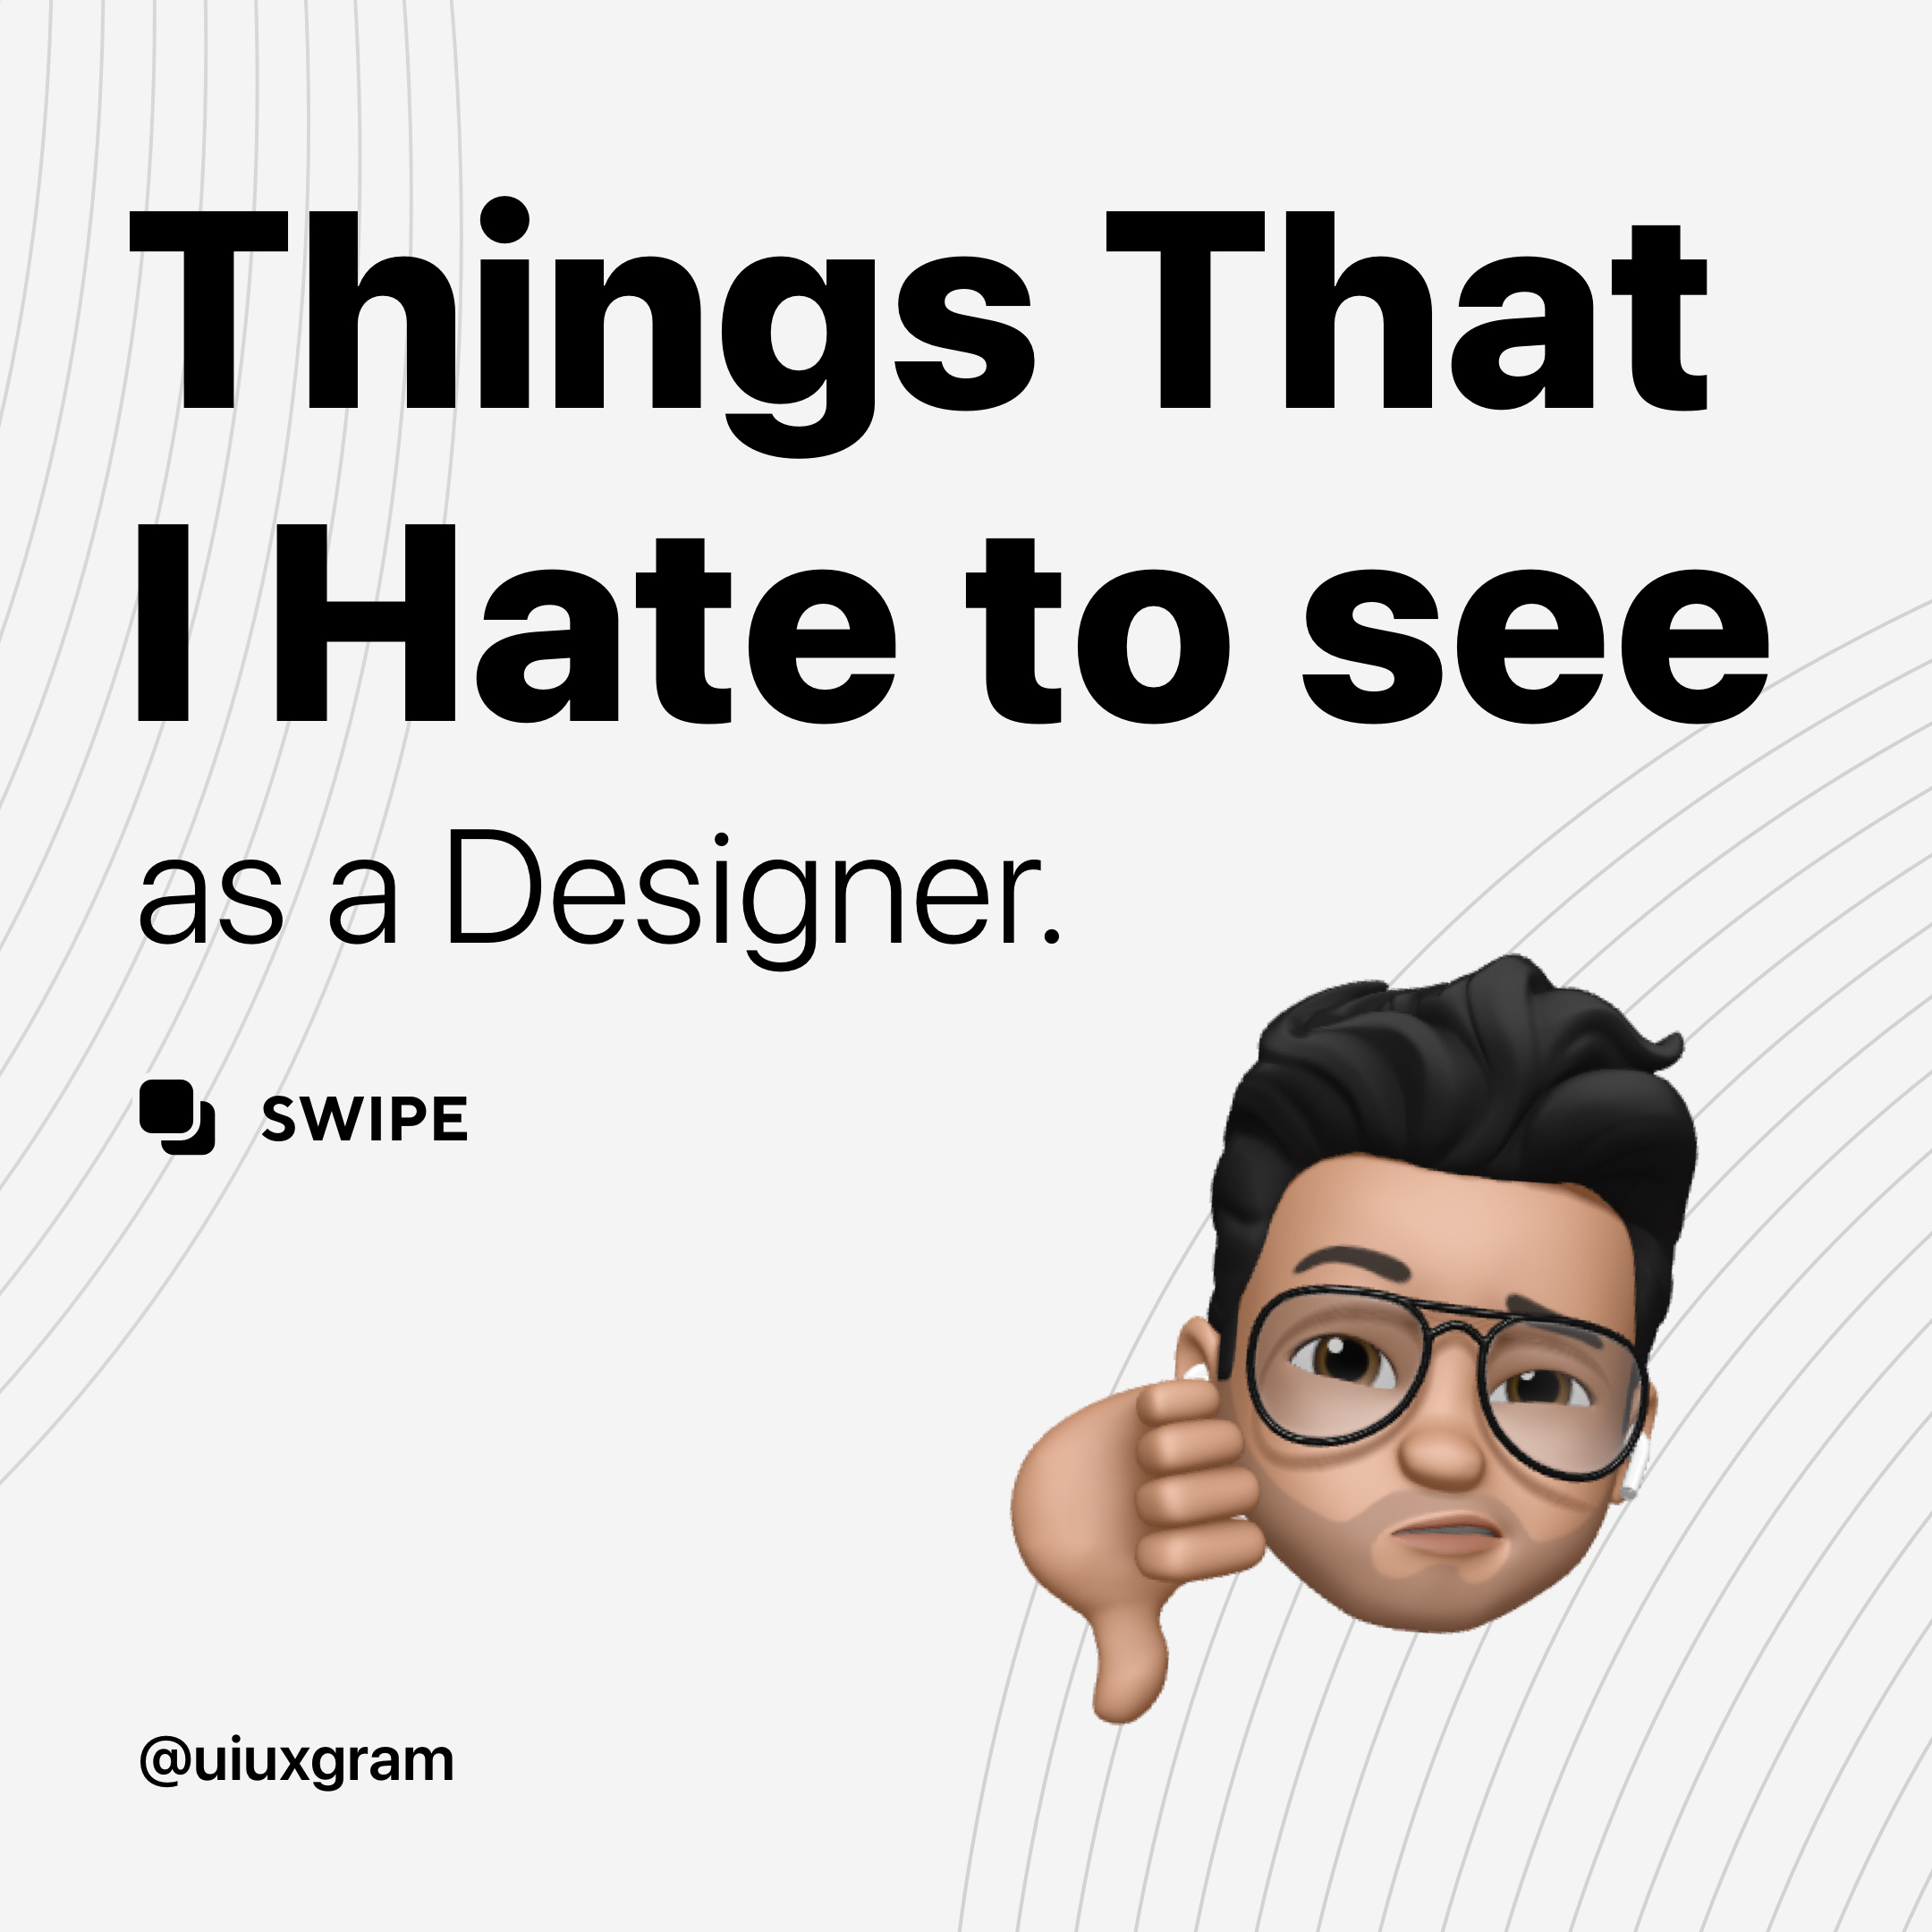 Things that I hate to see as a designer